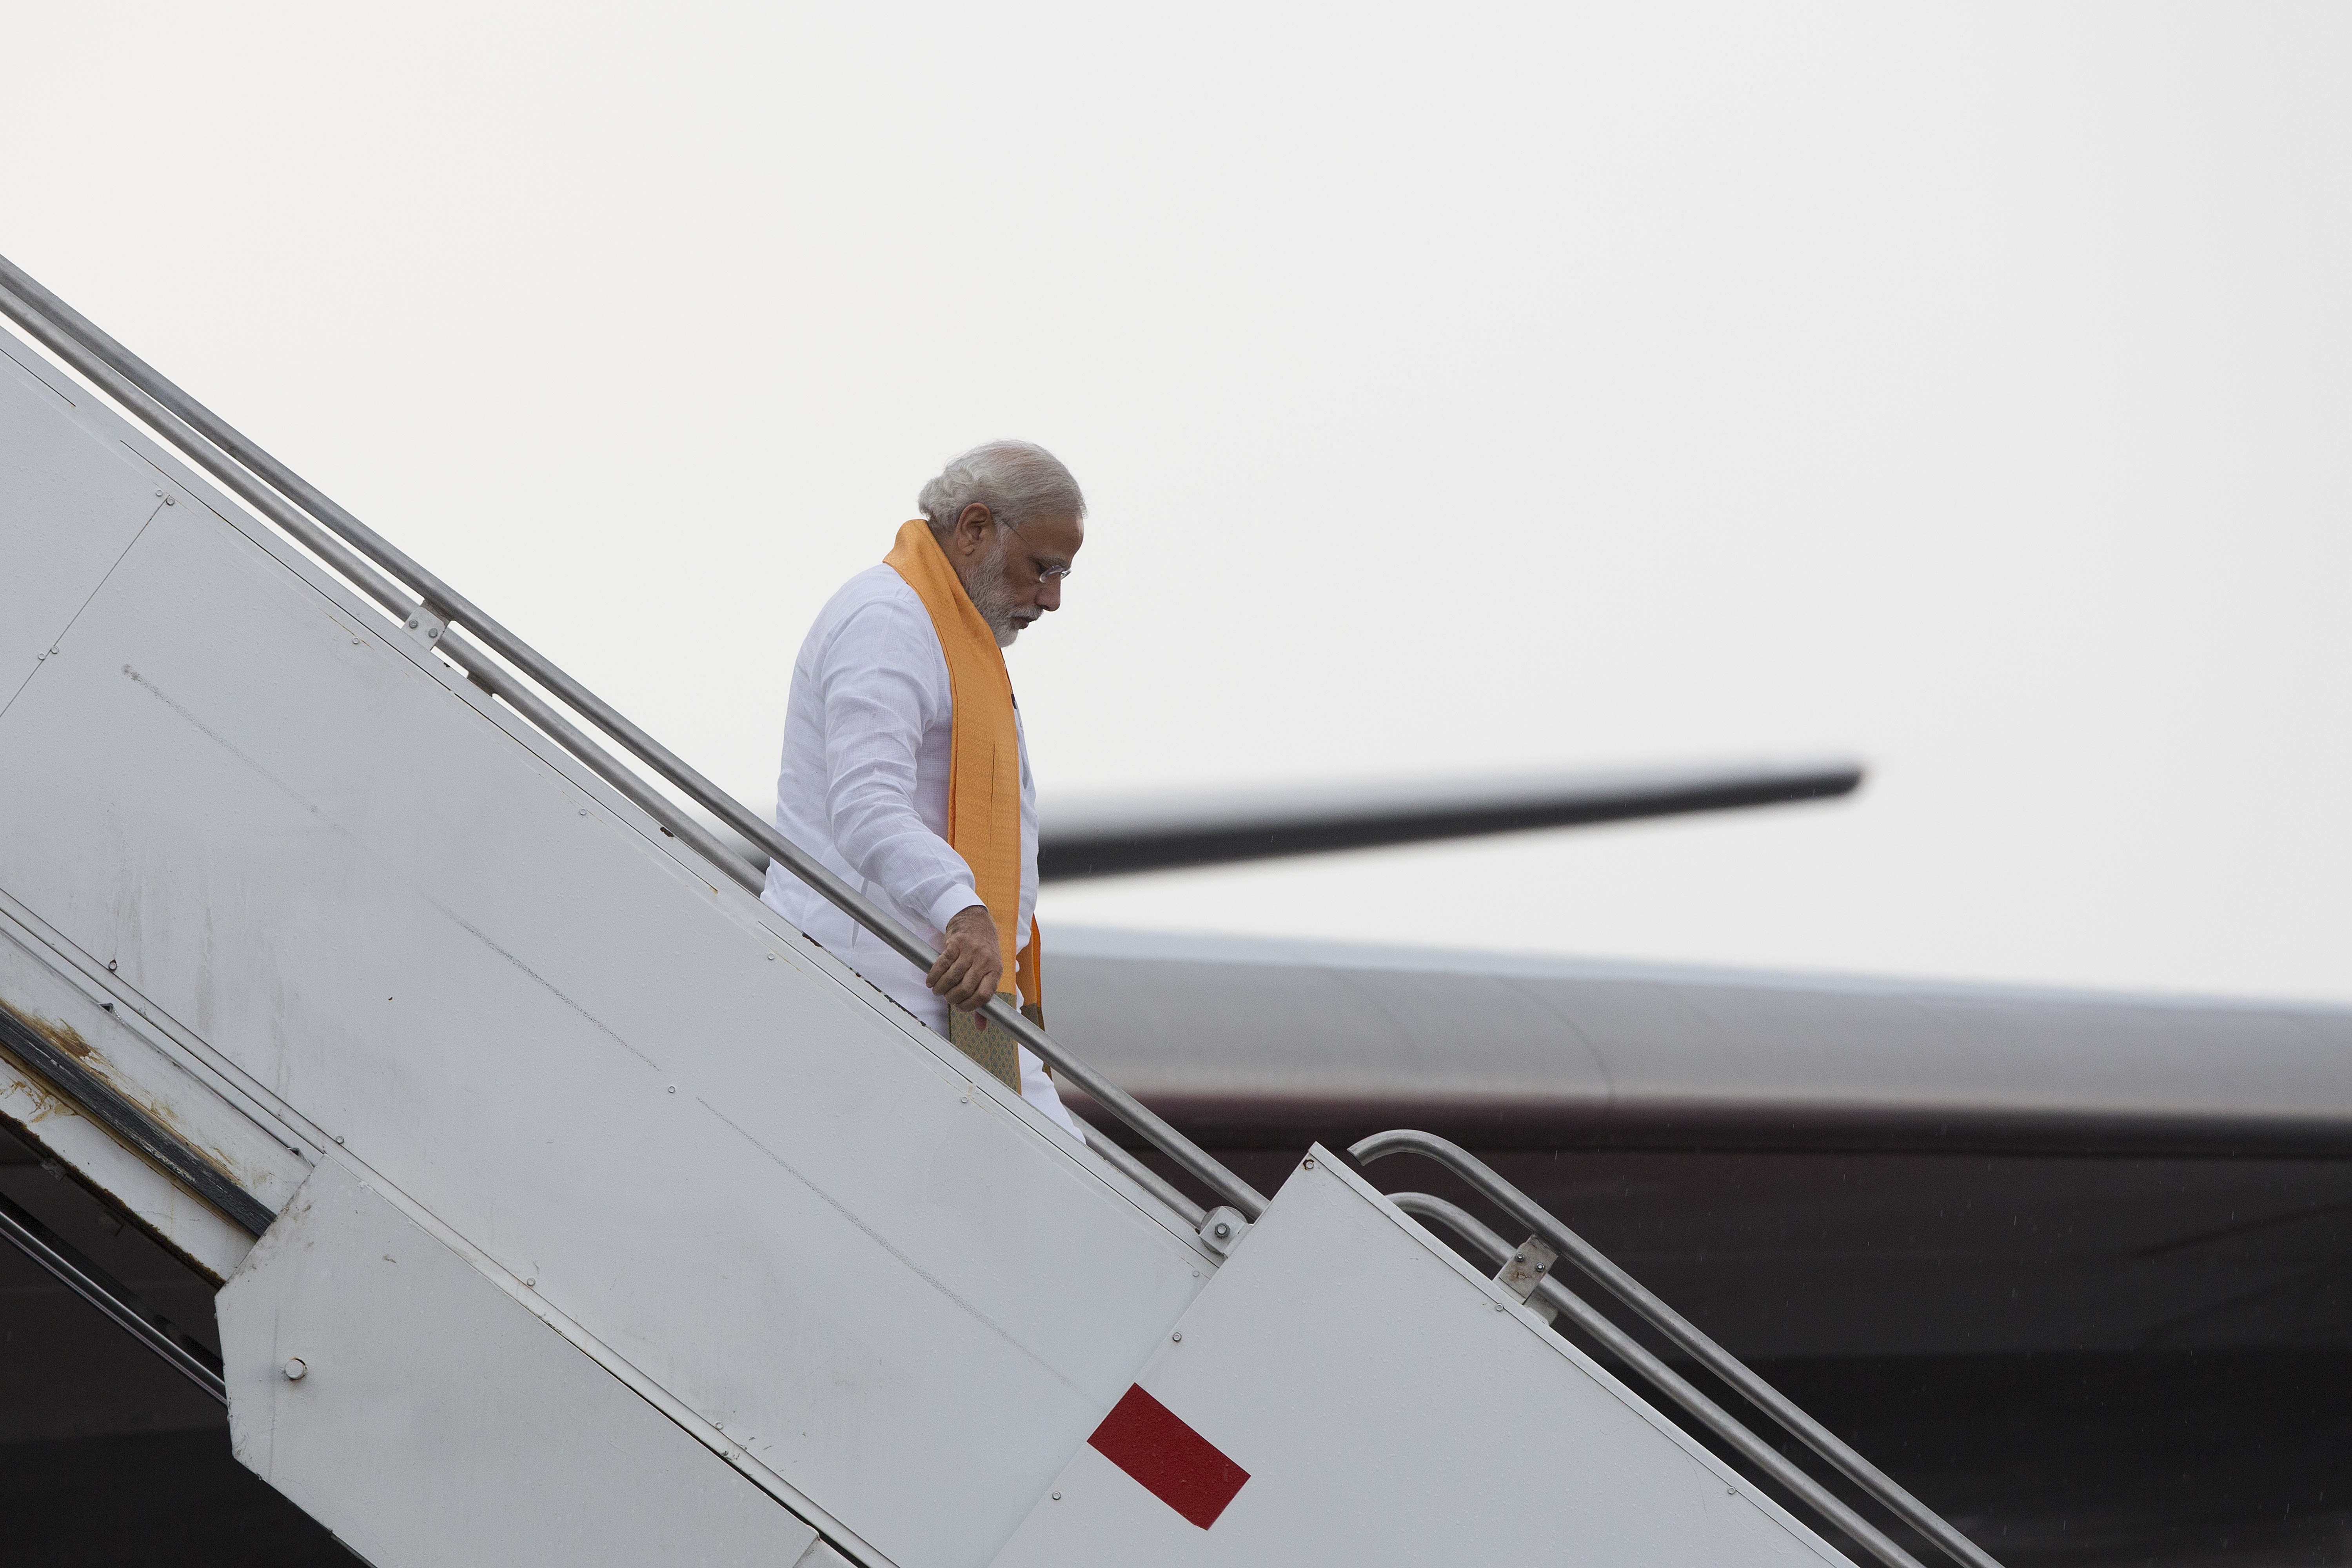 Narendra Modi, India's prime minister, disembarks an Air India Ltd. aircraft in Mexico City, Mexico, on Wednesday, June 8, 2016.